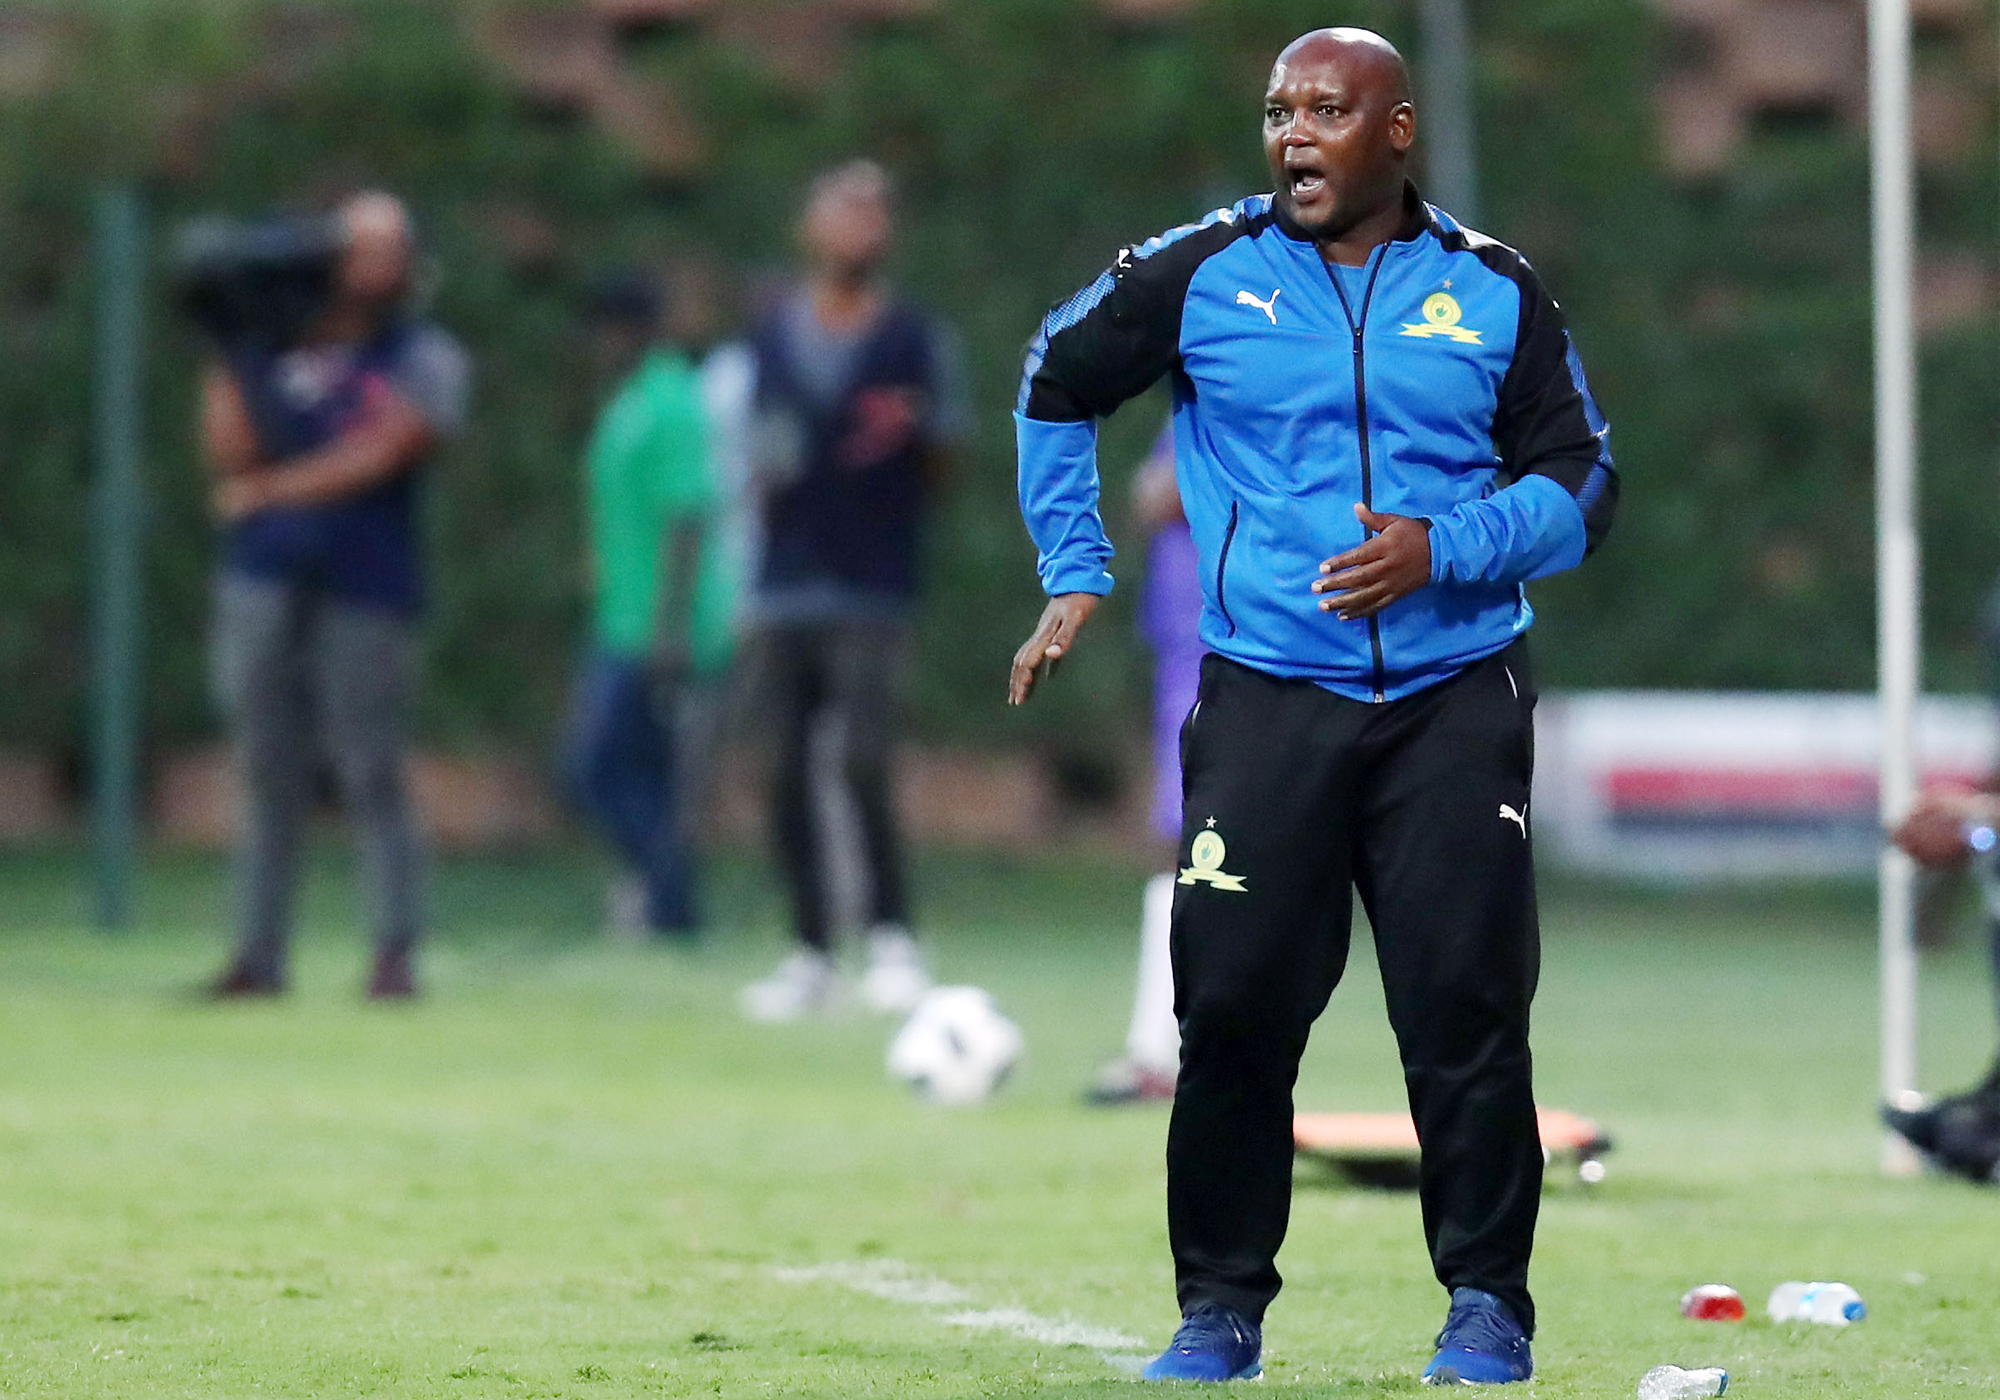 2839680f8cd Mamelodi Sundowns' Caf Champions League campaign started on the good note  with coach Pitso Mosimane receiving an invitation from Caf's President  Ahmad Ahmad ...